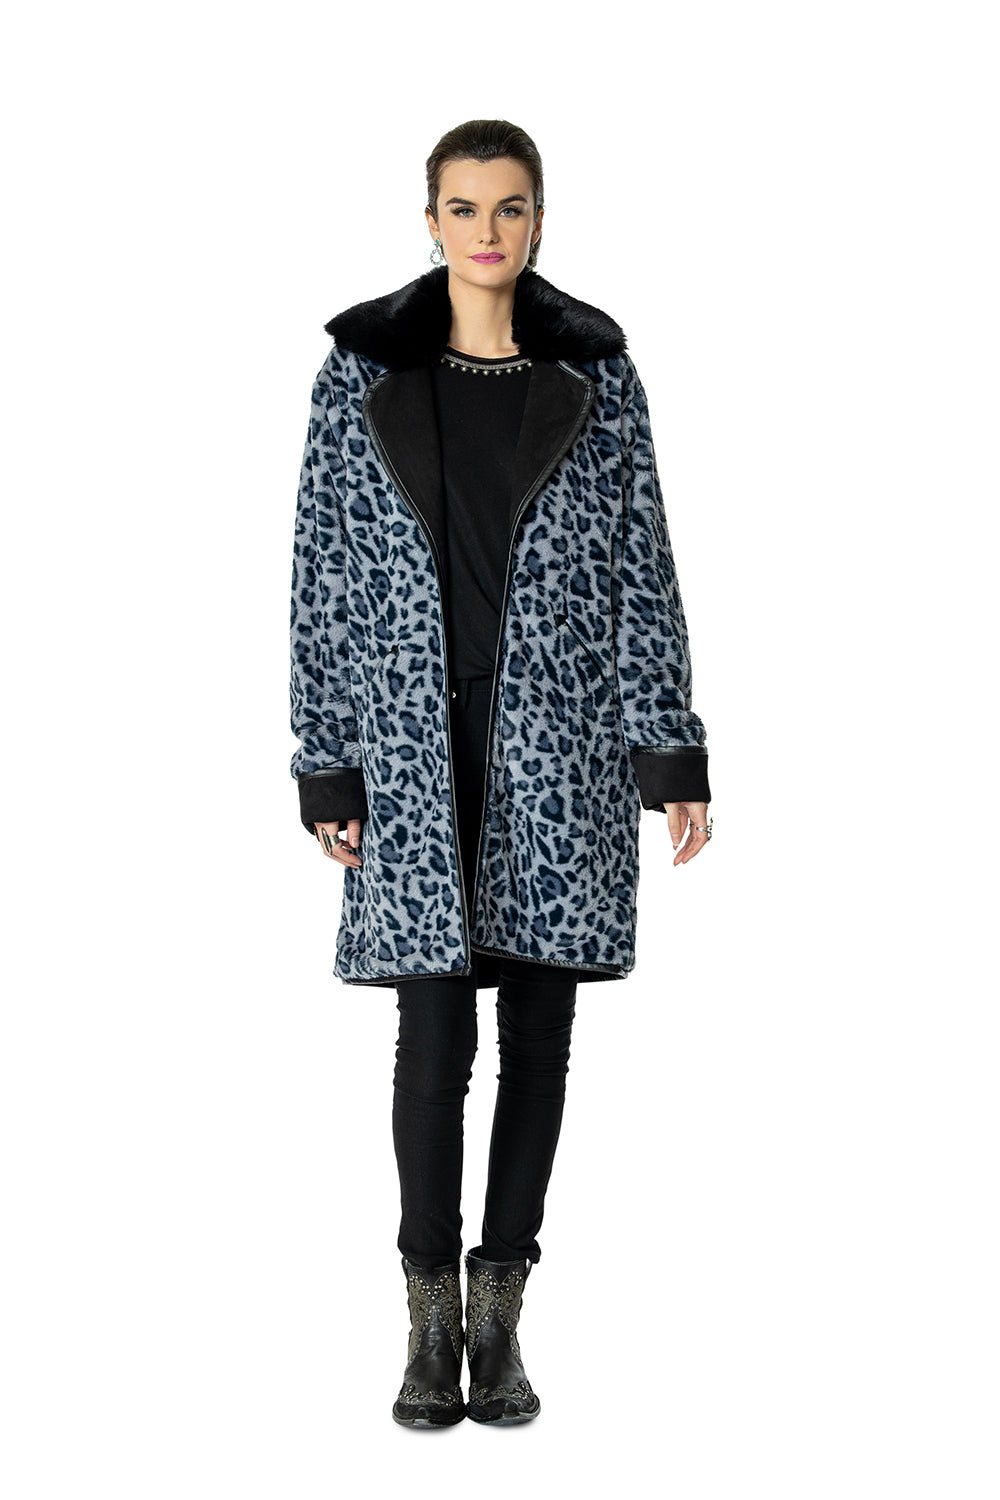 Cheetah Blue Jacket